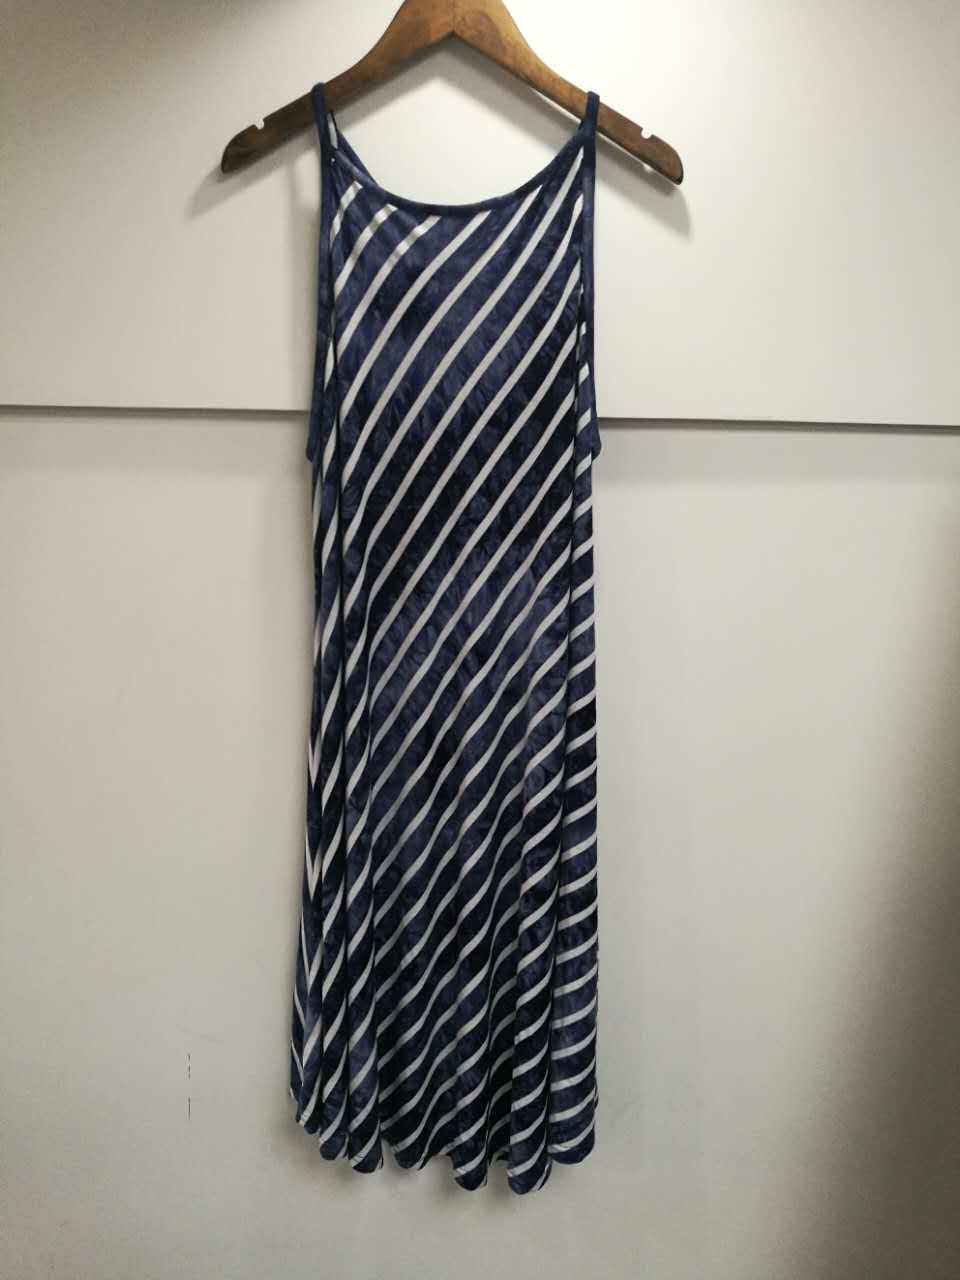 New Women's sleeveless dress